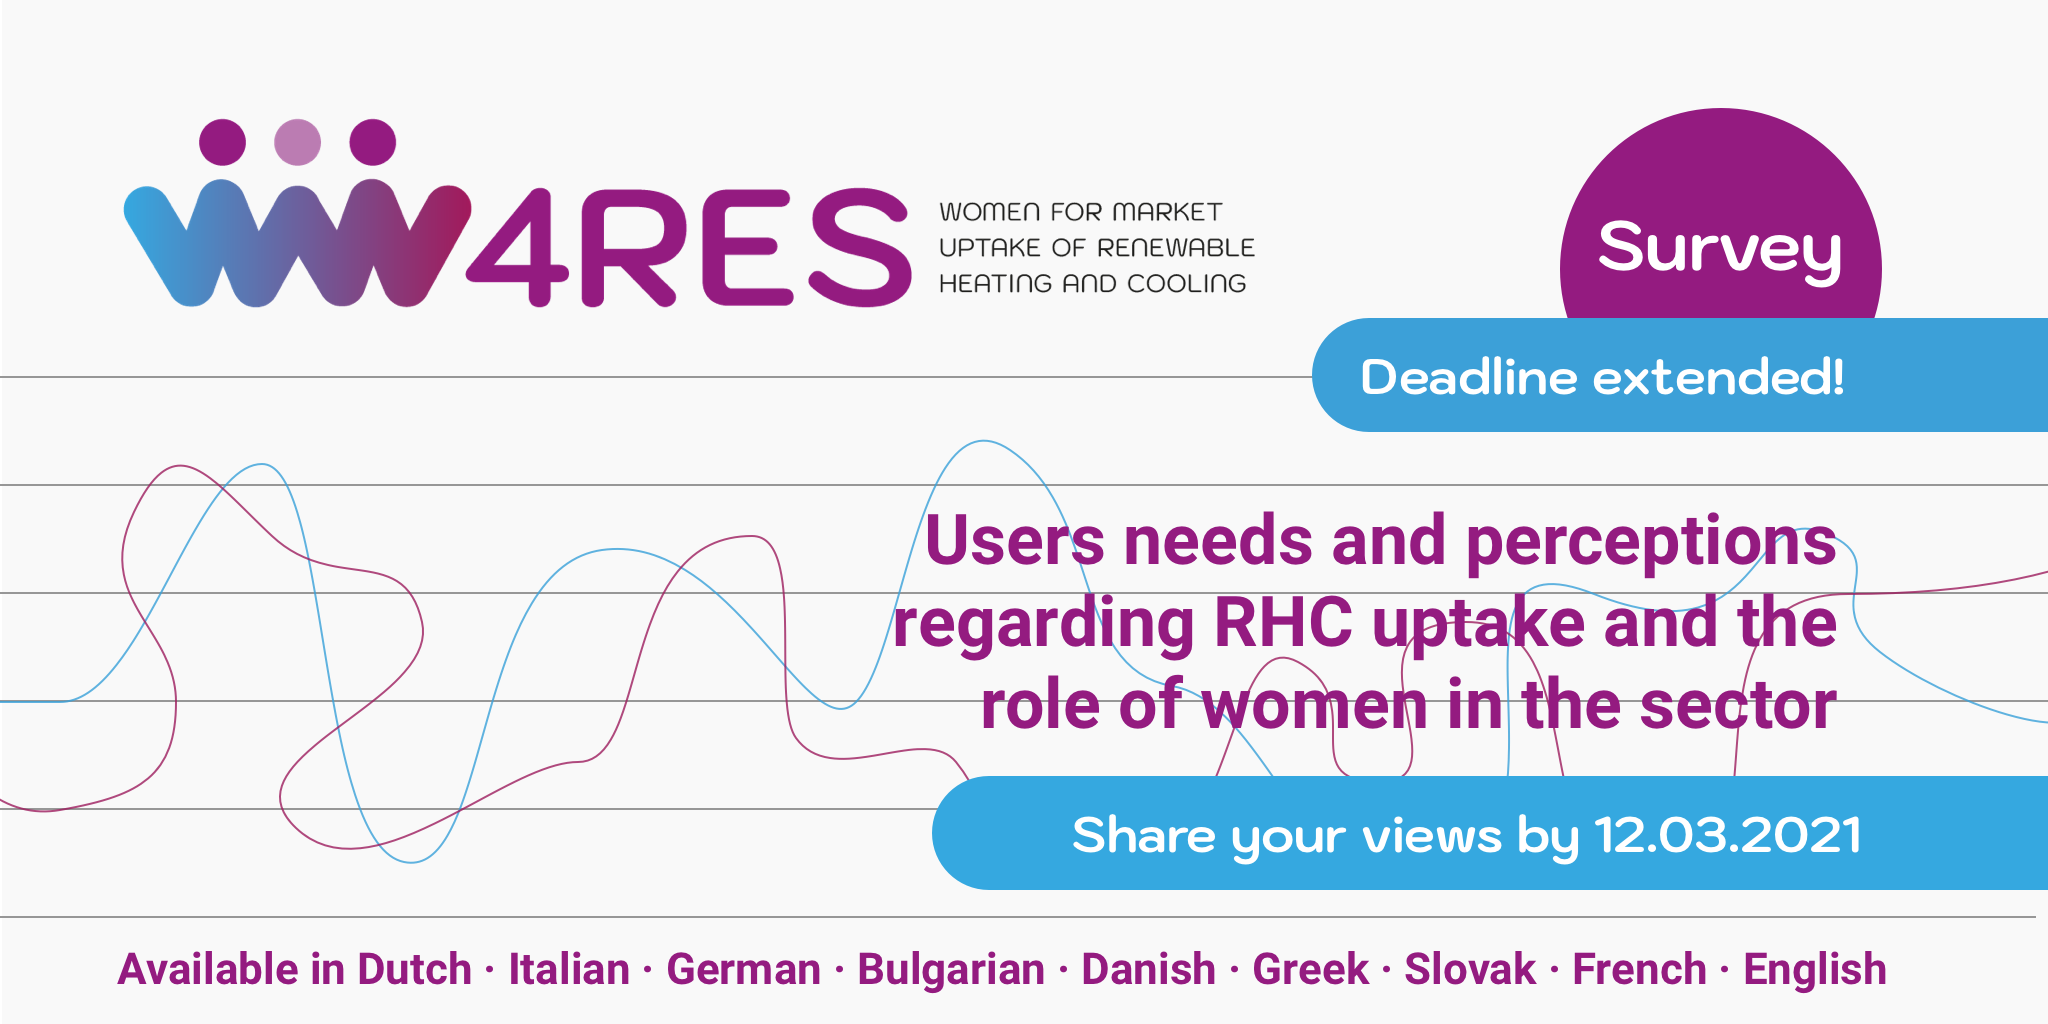 W4RES Survey on users needs and perceptions regarding RHC uptake and the role of women in the sector